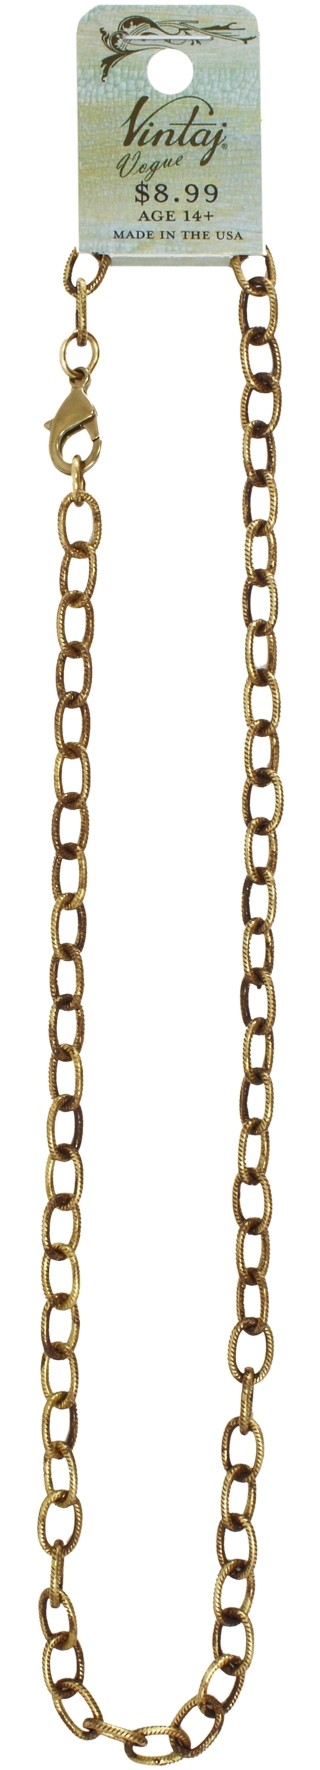 Vintaj Vogue Solid Brass Etched Cable Chain 6.5 x 9.5mm (open link) Necklace